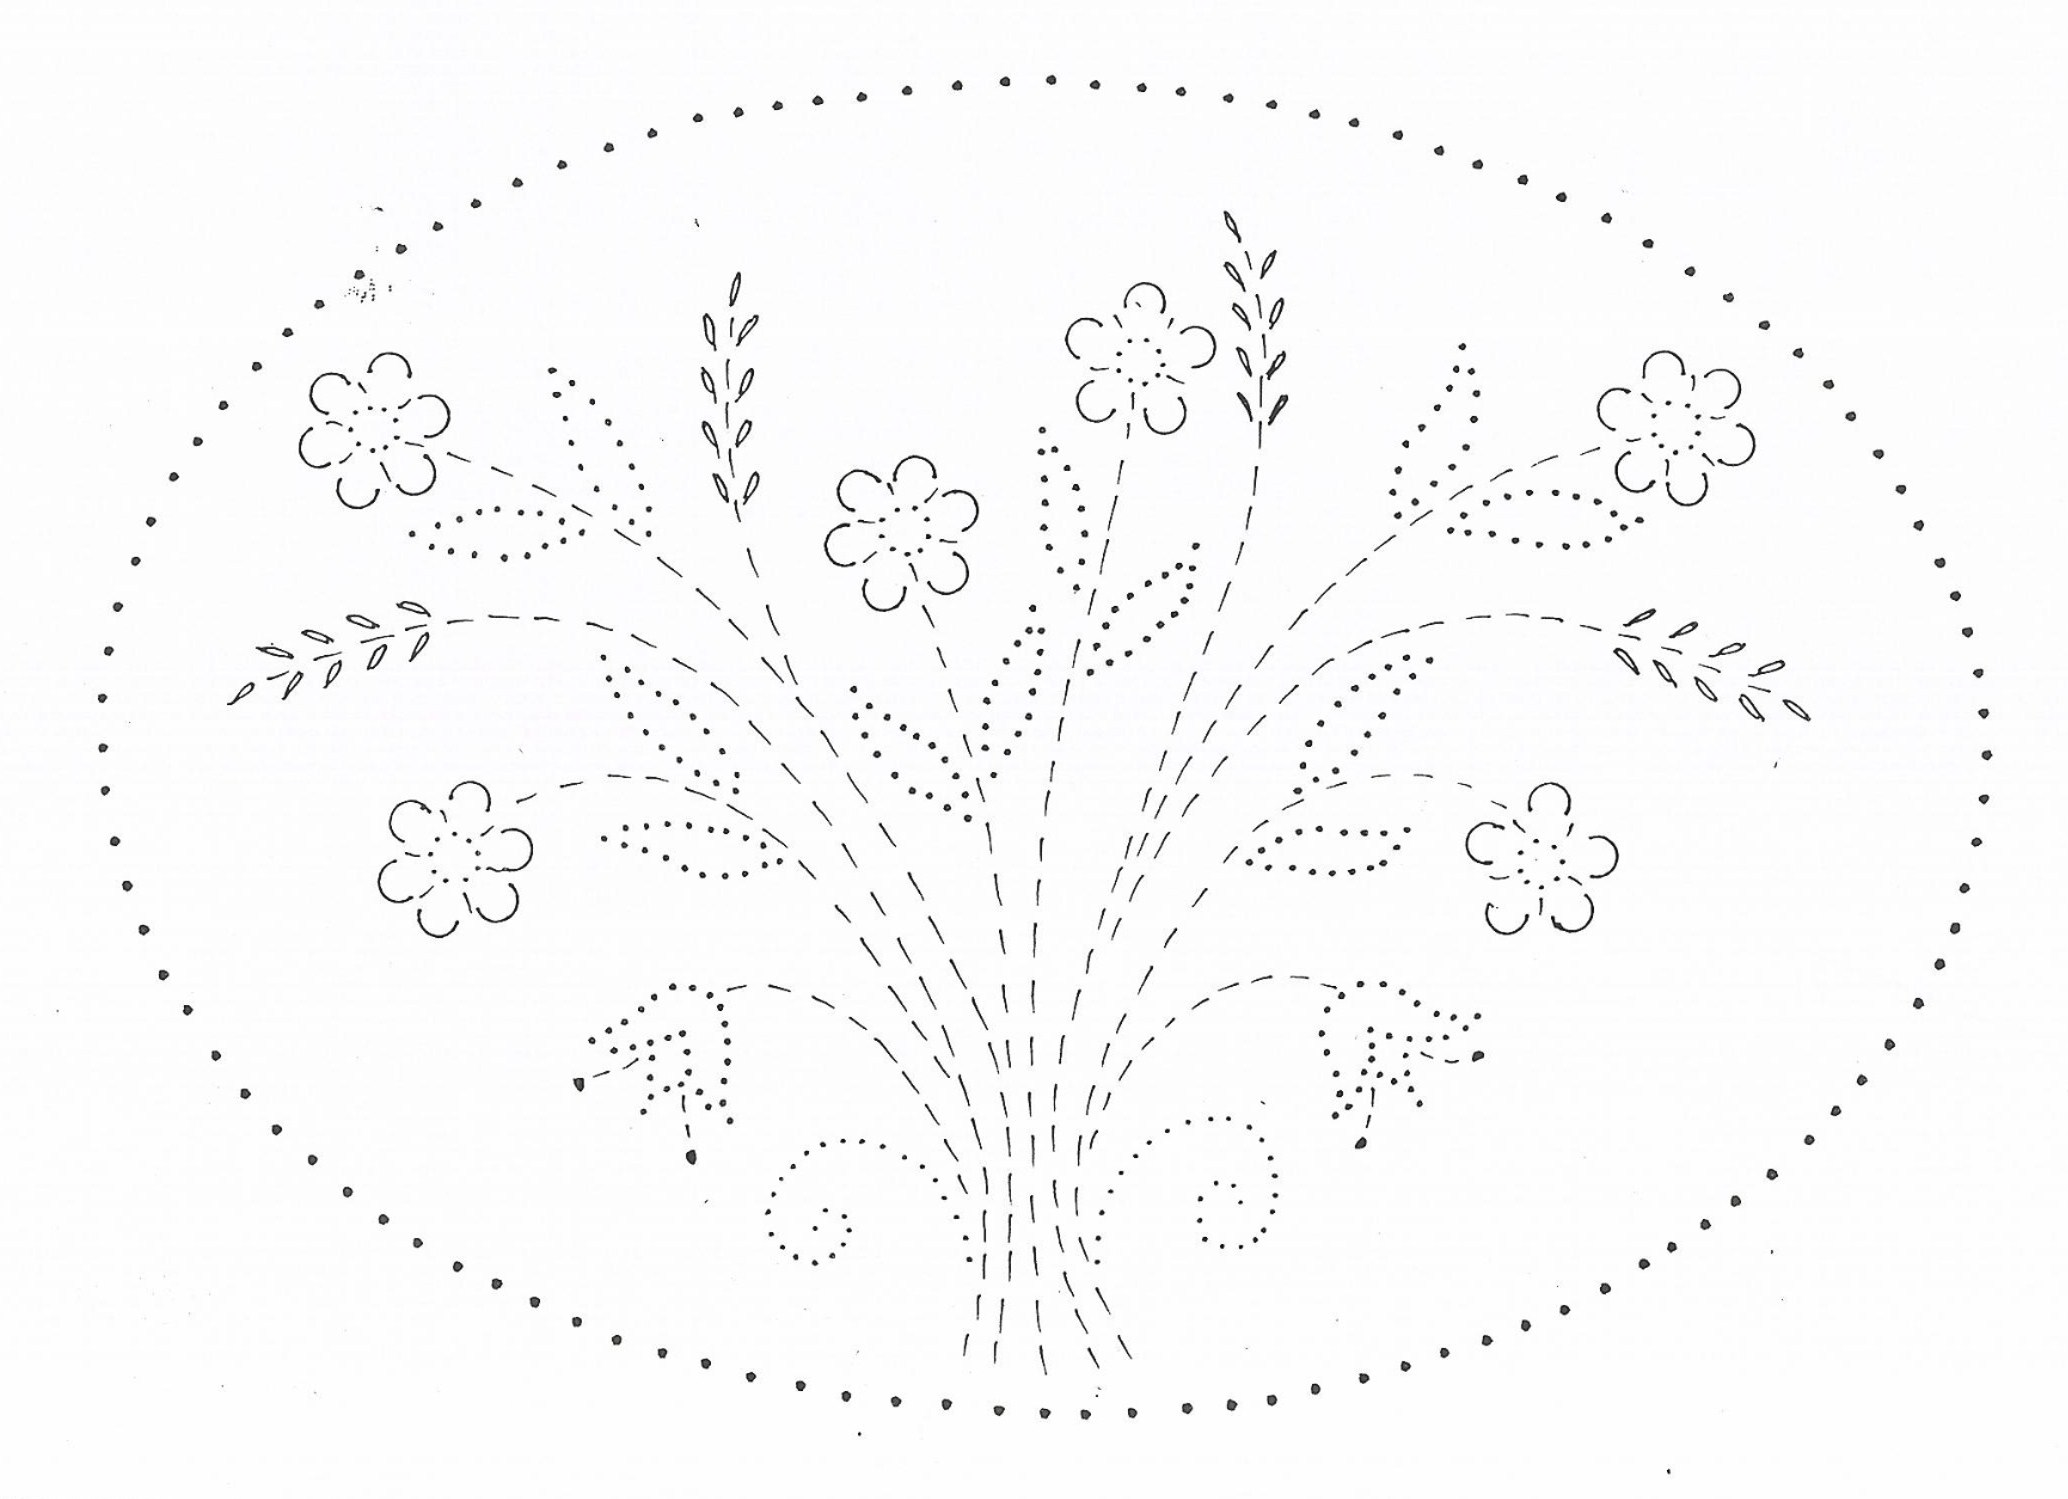 tin punch patterns    p 1108 wheat flowers 10x10 and 14x10